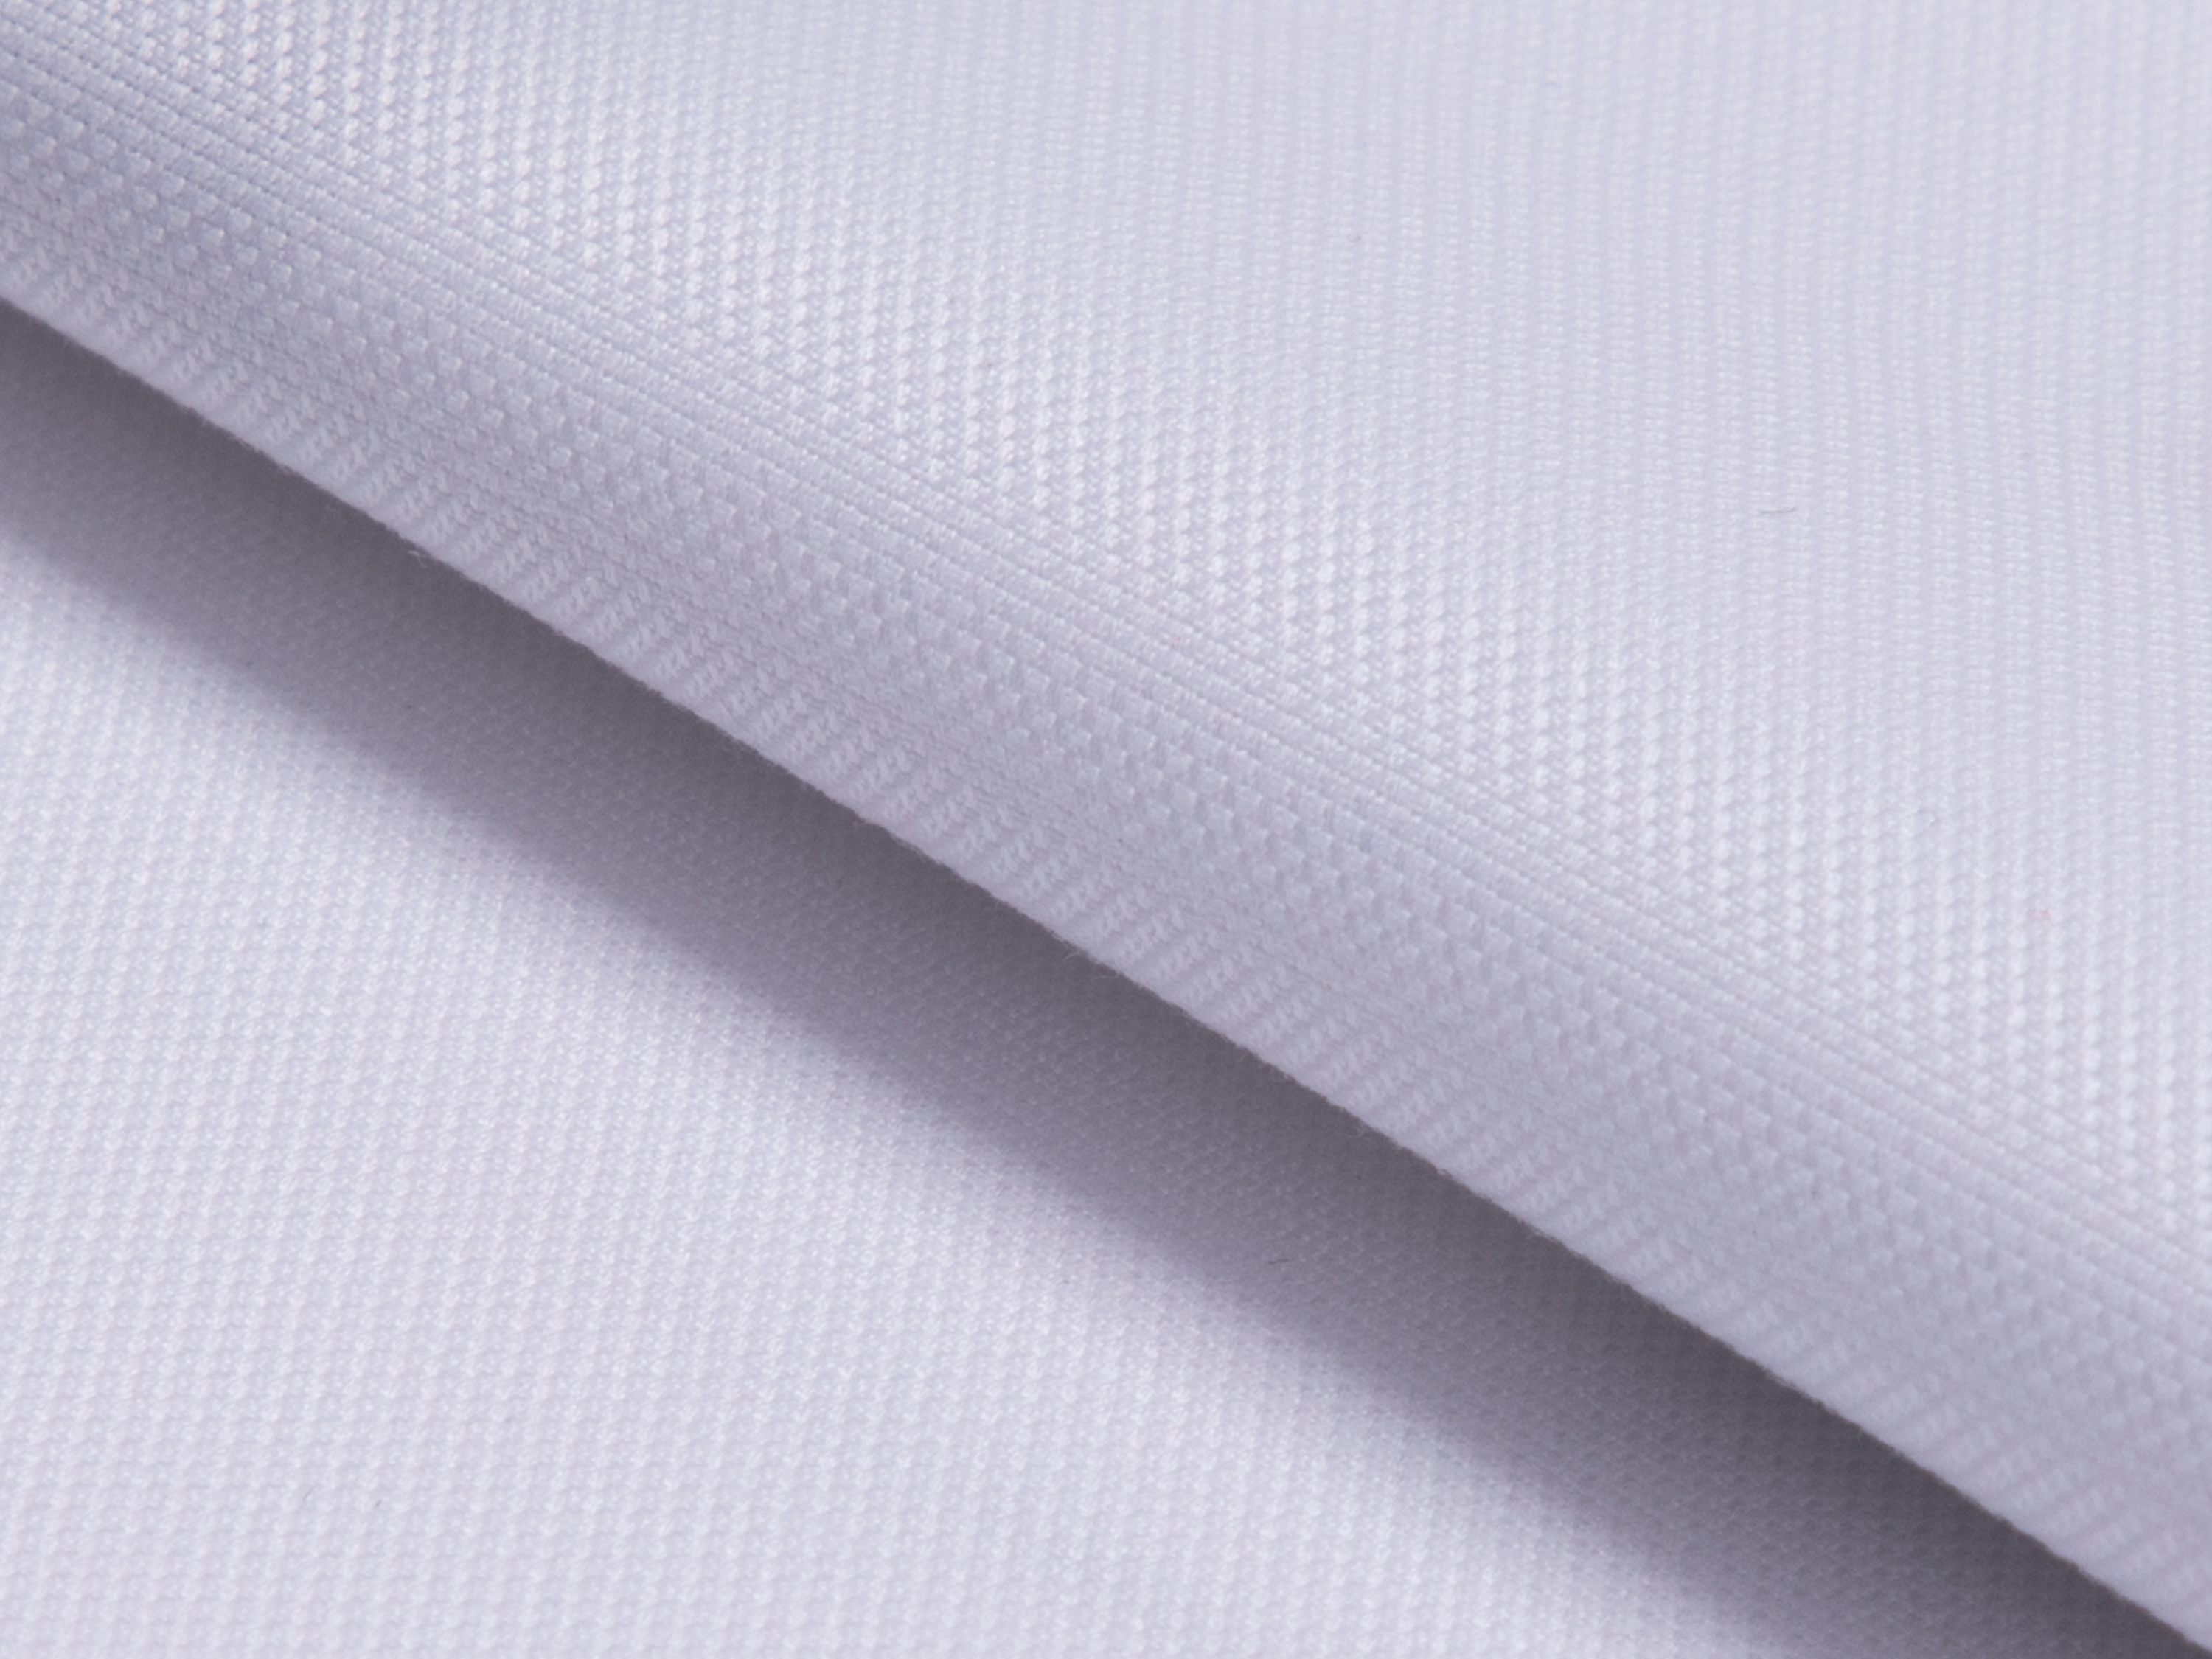 Buy tailor made shirts online - MAYFAIR (NEW) - Pinpoint White